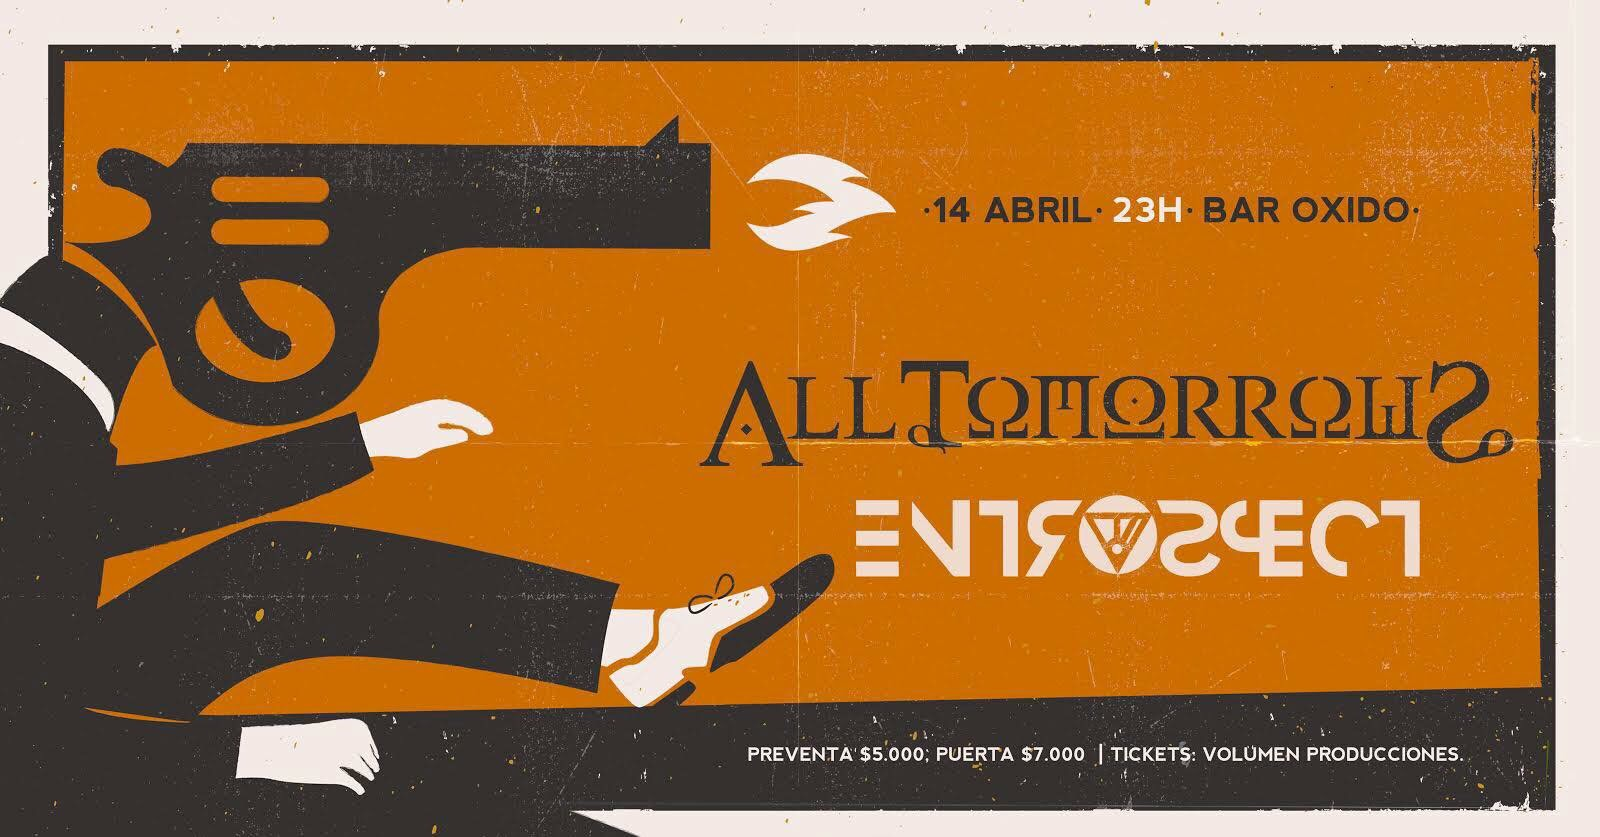 All Tomorrows + Entrospect juntos en Bar Oxido (14 abril)